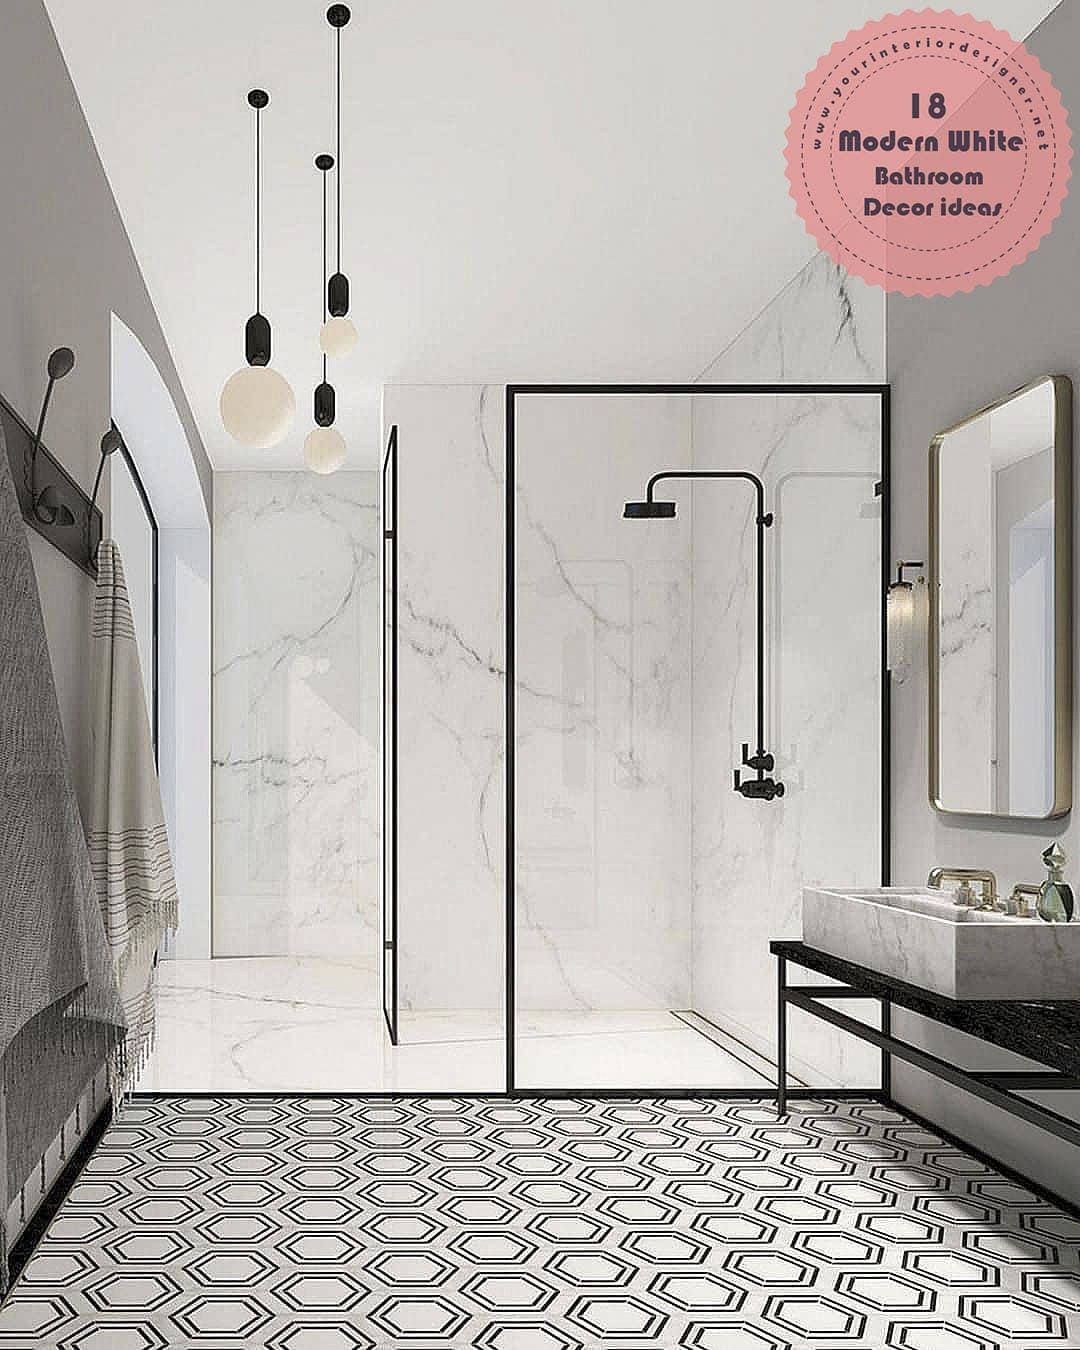 18 White Bathroom Decor That Will Refresh You When You Look At Them Your Interior Designer In 2020 Monochrome Bathroom White Bathroom Inspiration Black White Bathrooms